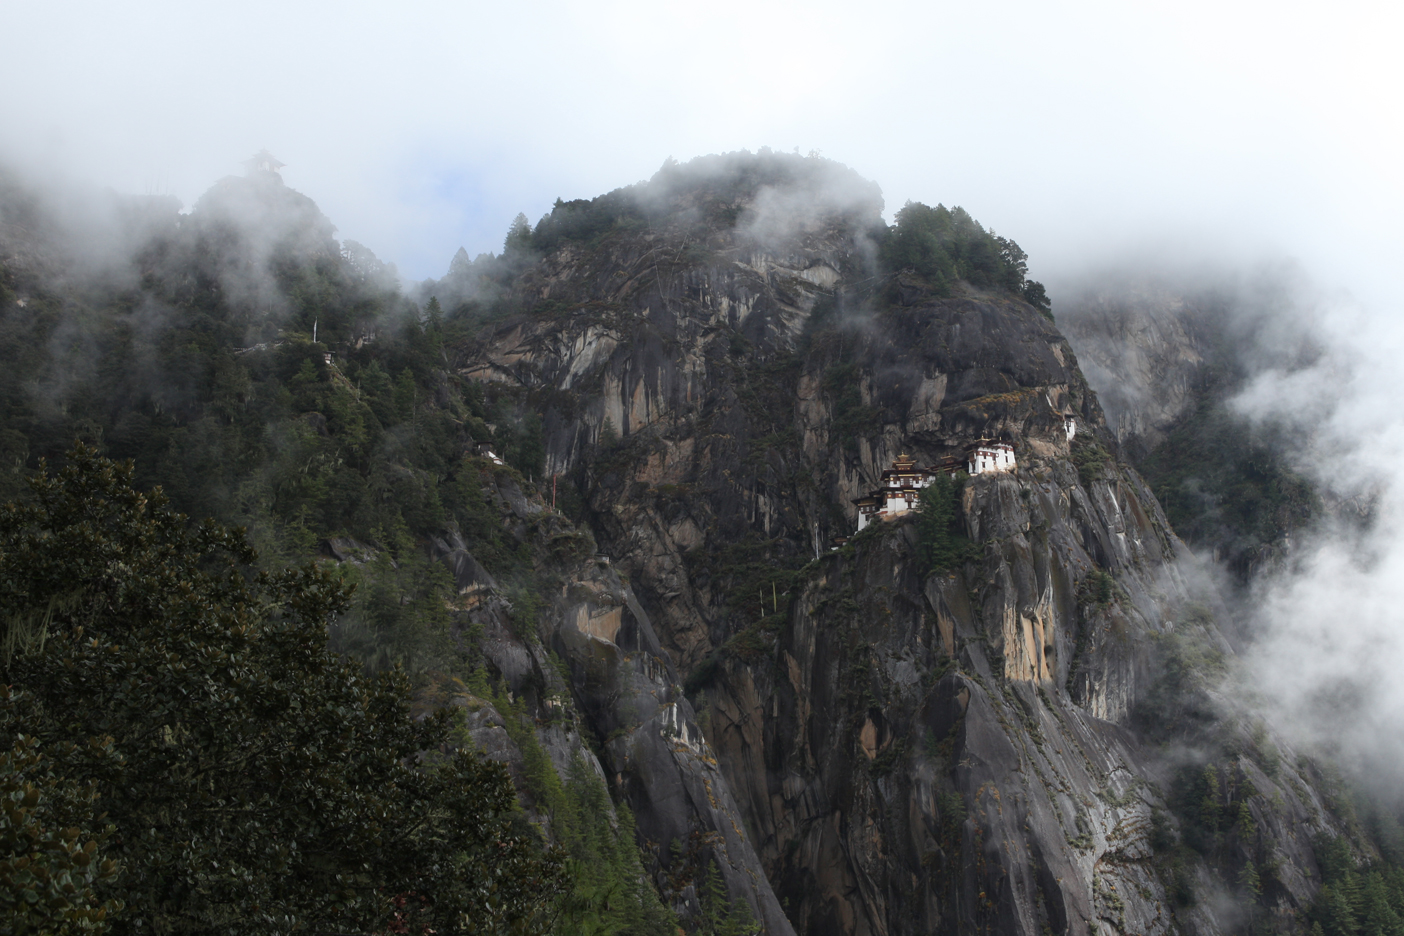 Looking up at Tiger's Nest Monastery through the morning fog